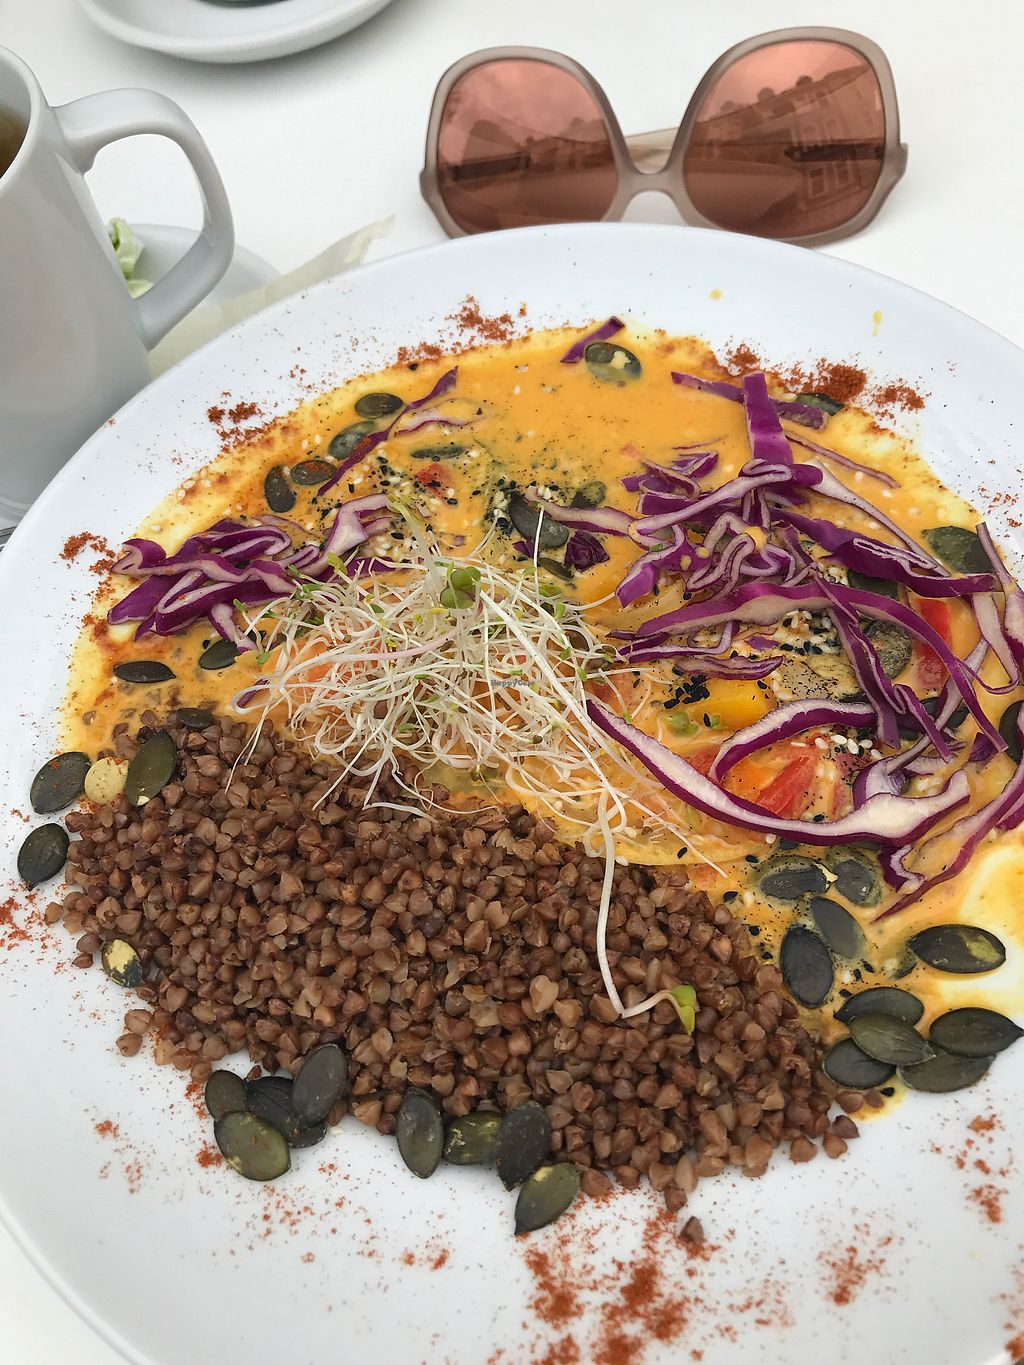 "Photo of Avocado Vegan Bistro - Wajdeloty  by <a href=""/members/profile/Beaa"">Beaa</a> <br/>Vegan curry  <br/> August 31, 2017  - <a href='/contact/abuse/image/41675/299420'>Report</a>"